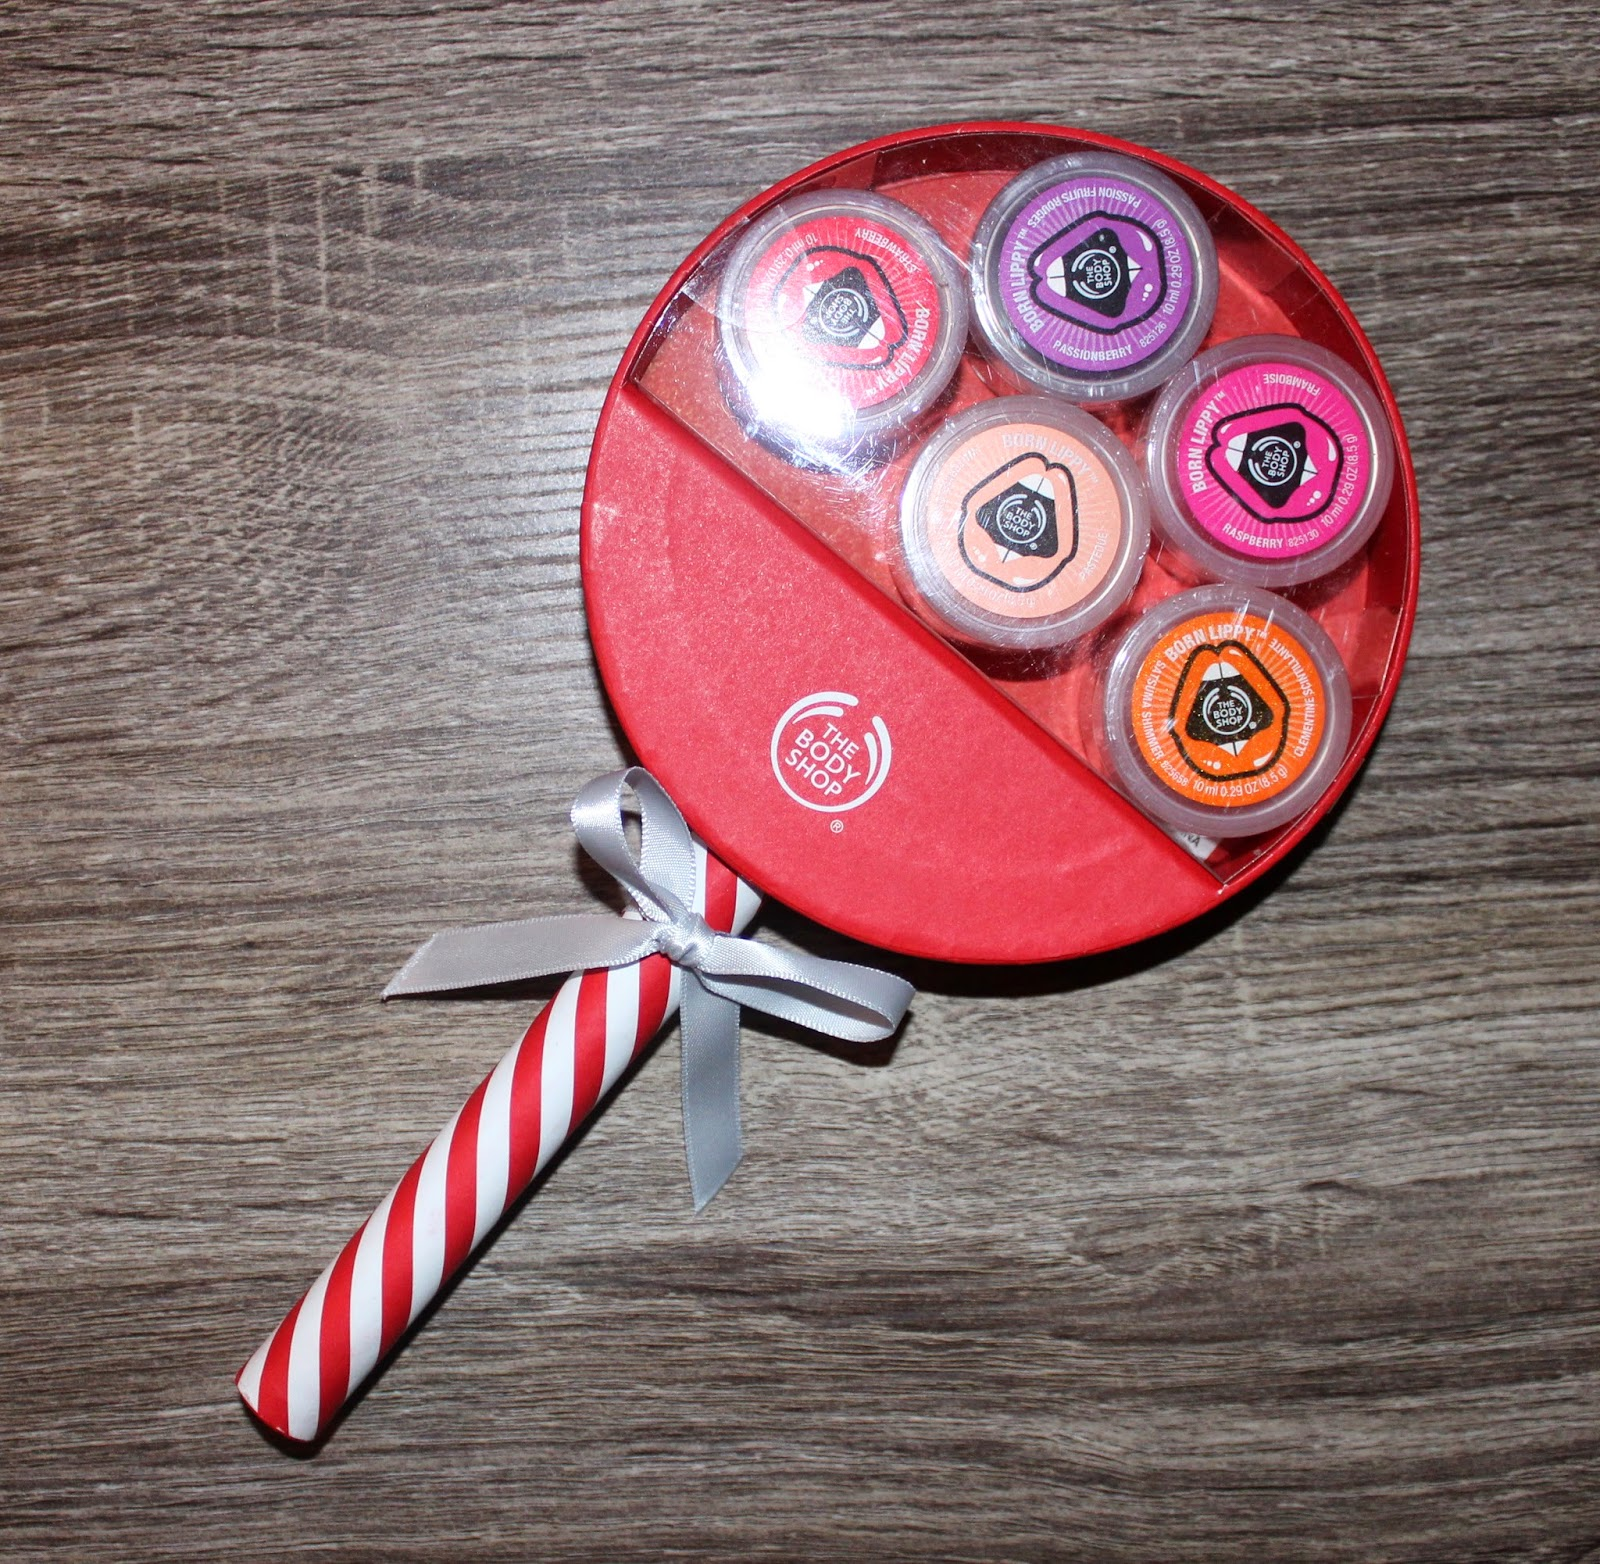 The Body Shop's The Jolly Lippy Lolly